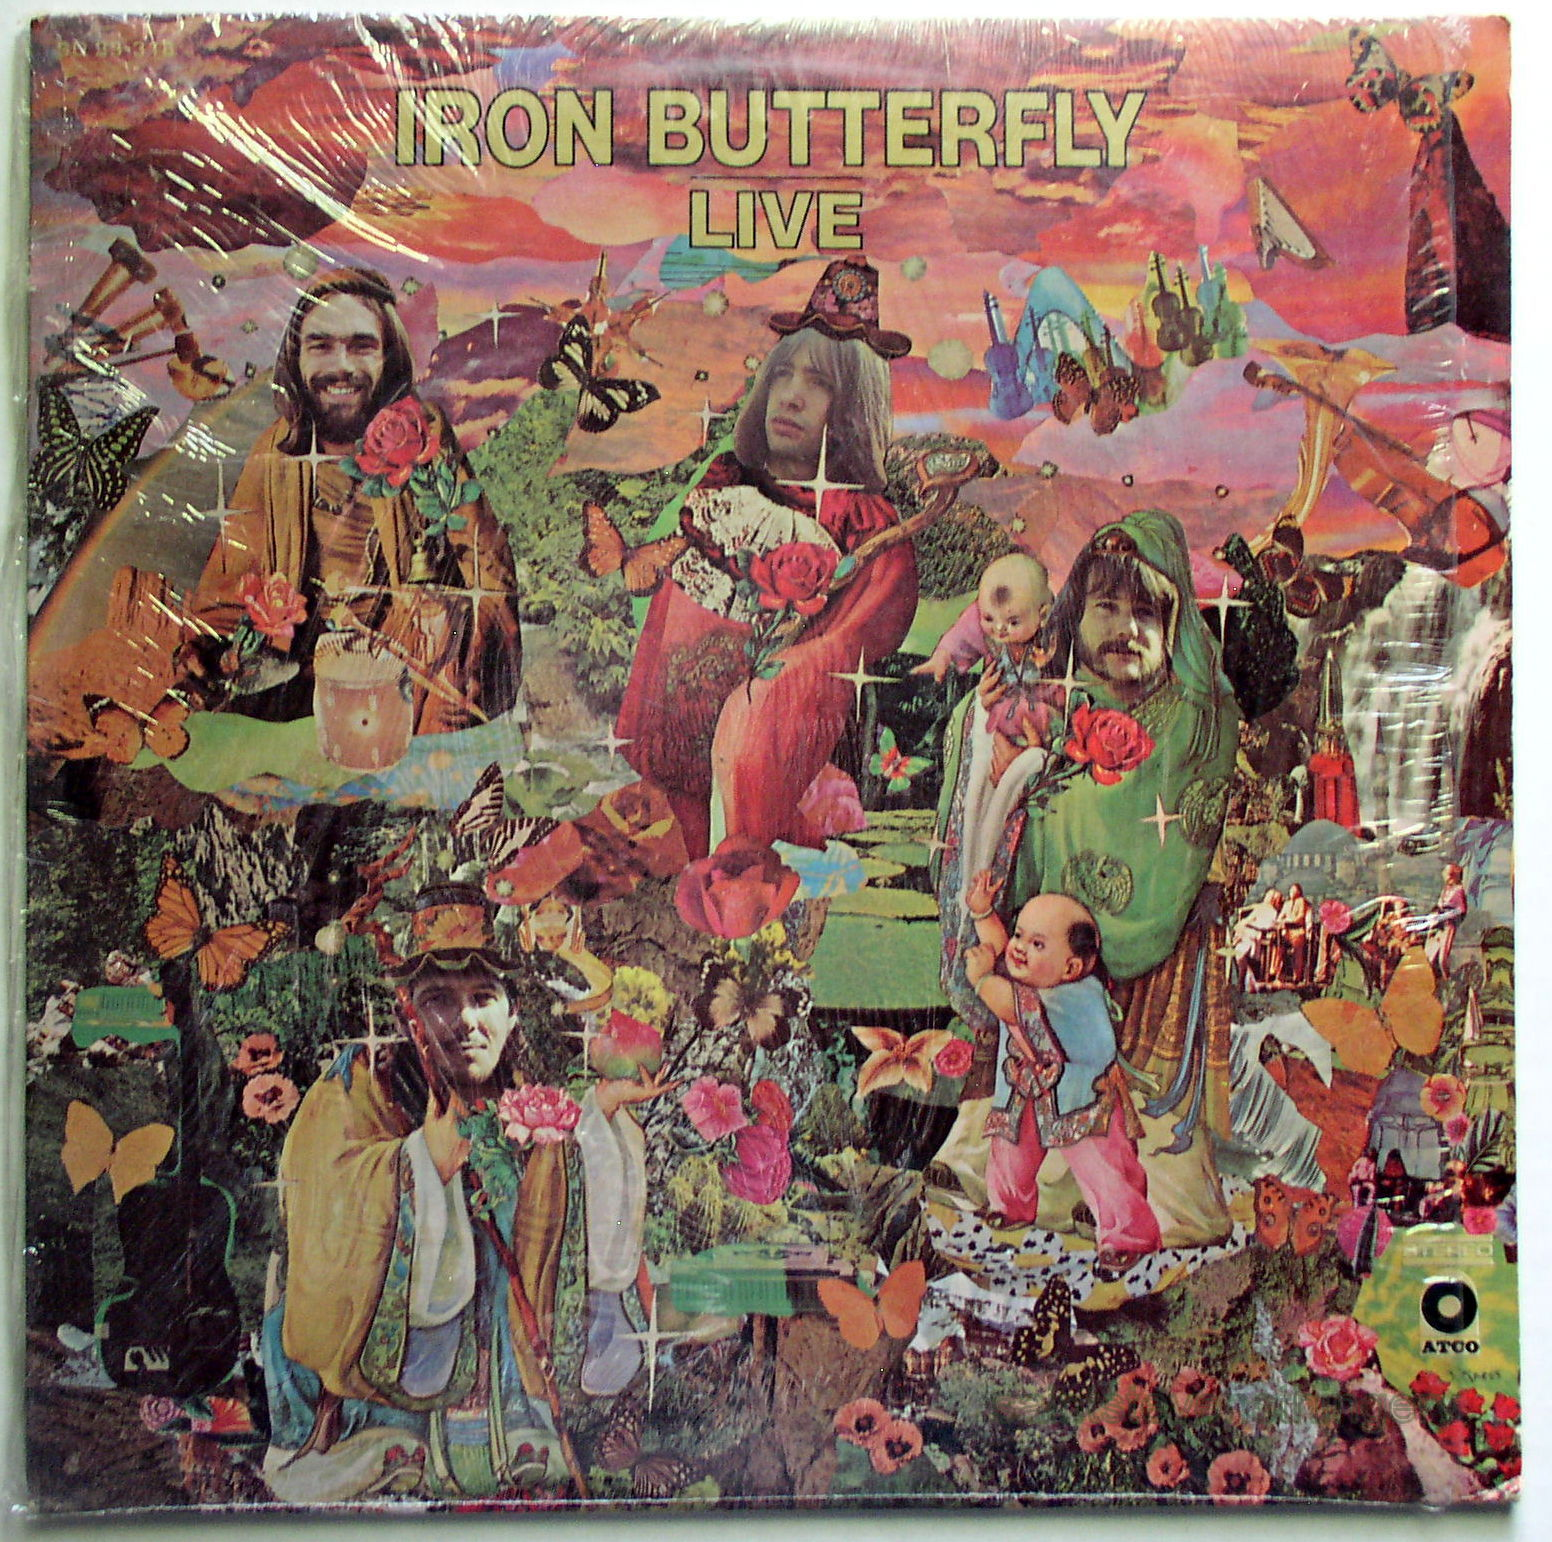 Lp Iron Butterfly Live Original 1970 Atco Pressing